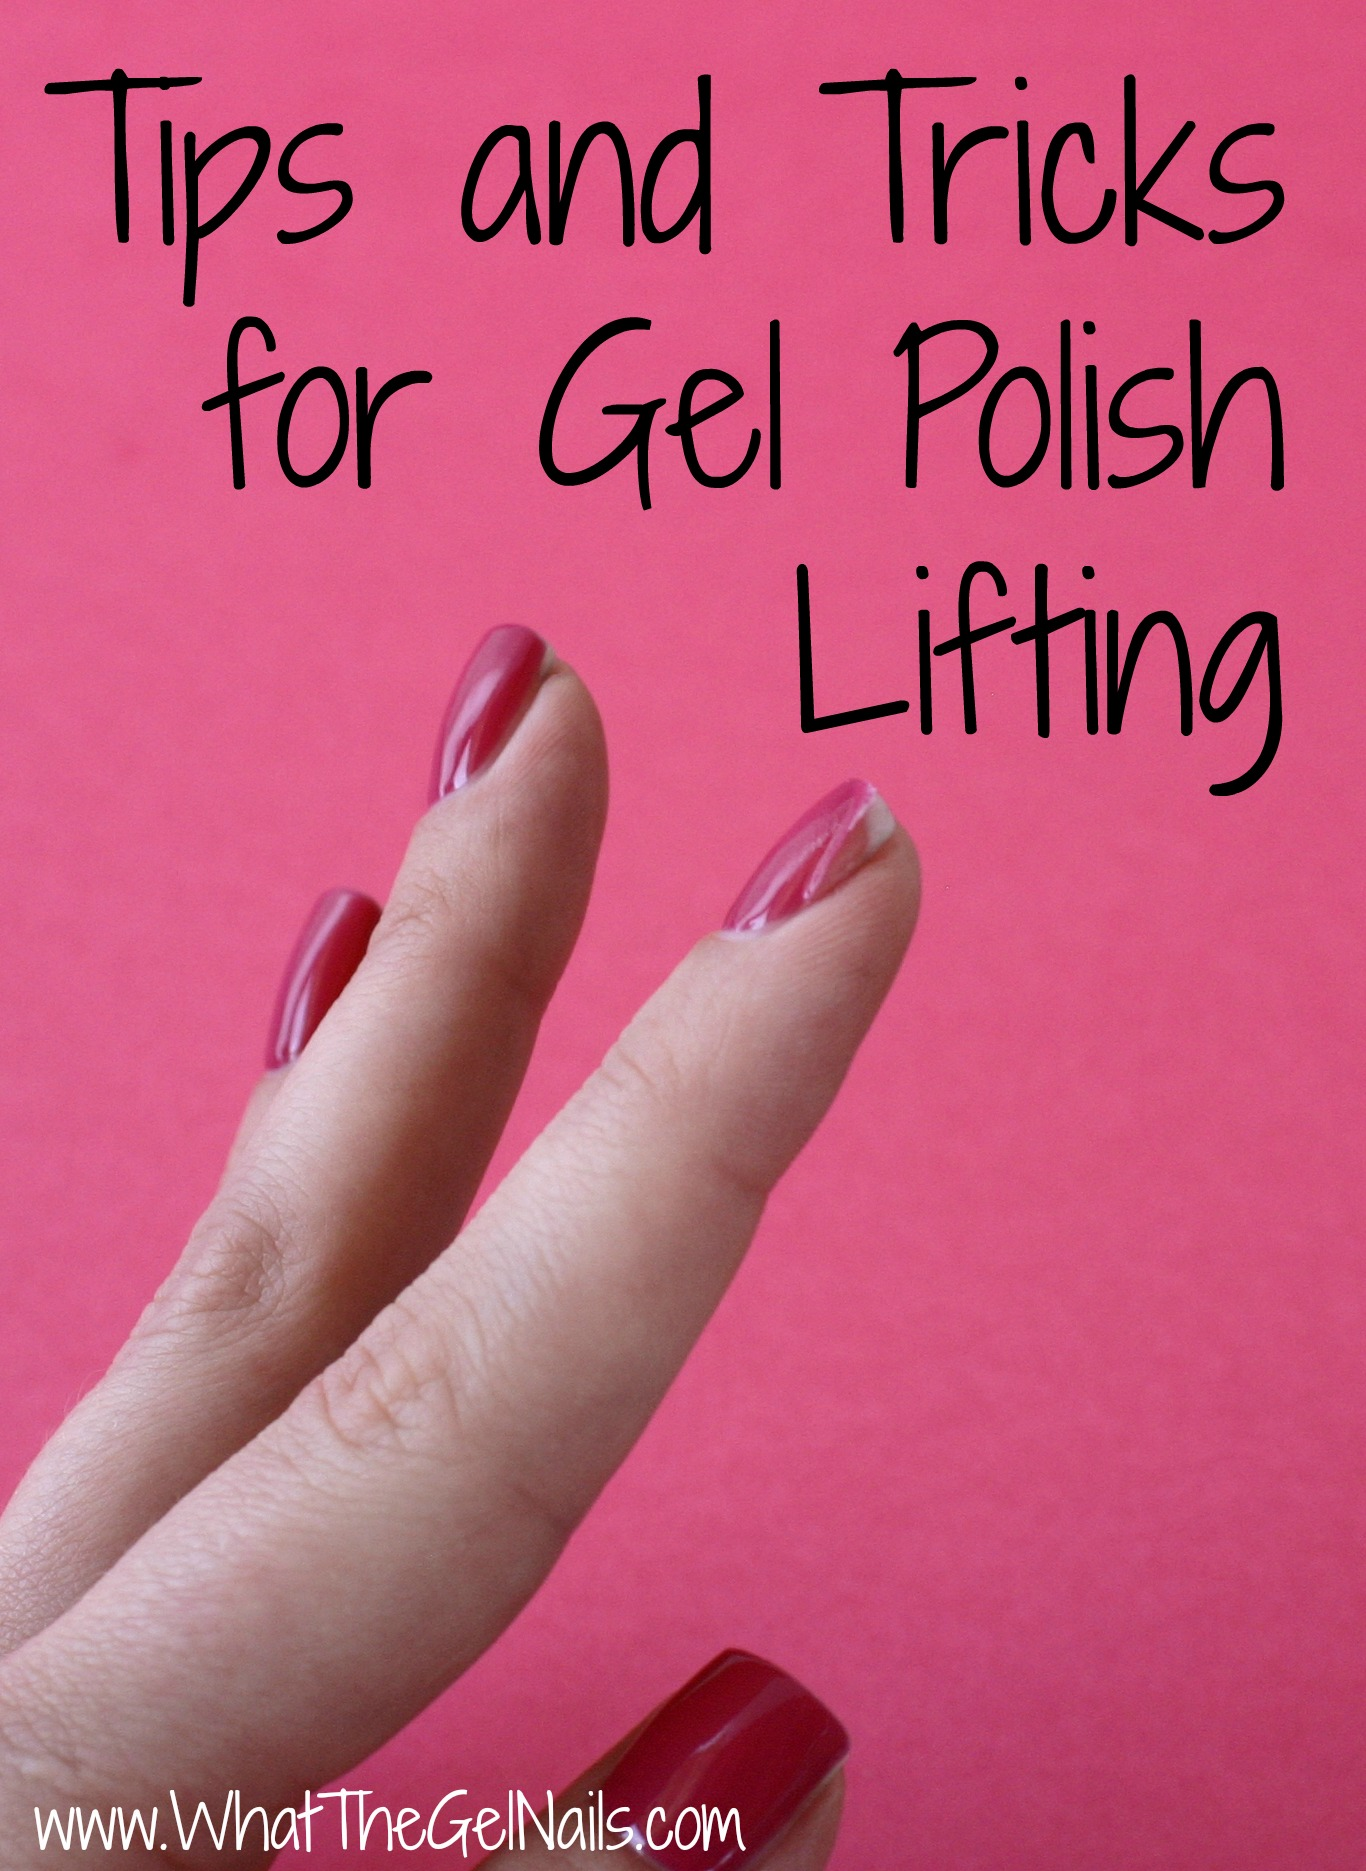 Tips and tricks for gel polish lifting solutioingenieria Images